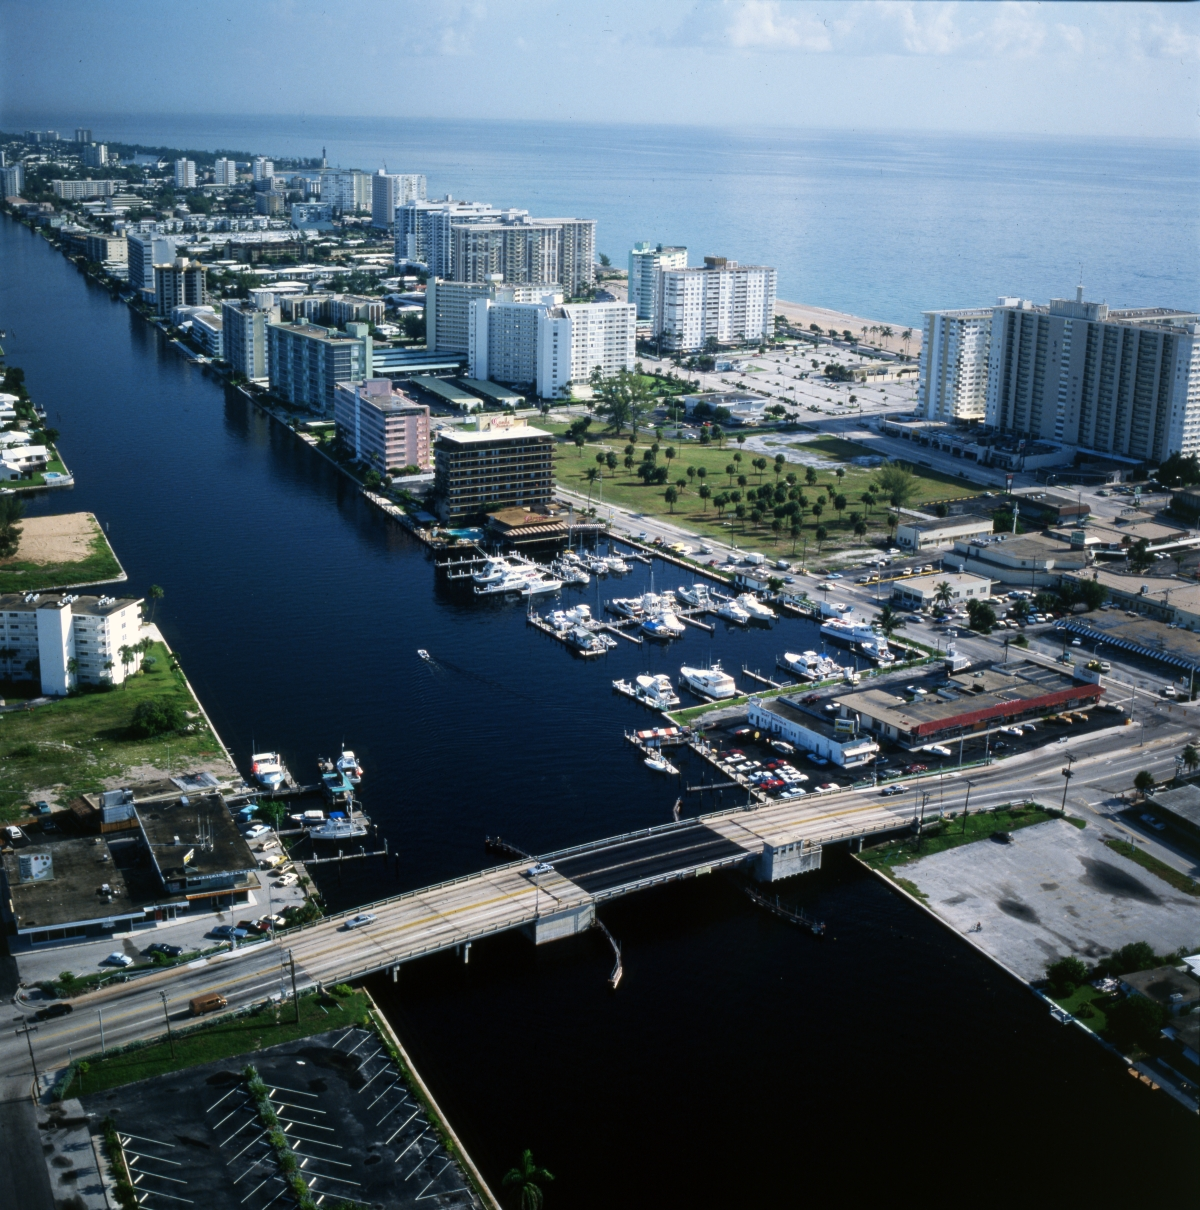 Aerial view looking north over Pompano Beach.